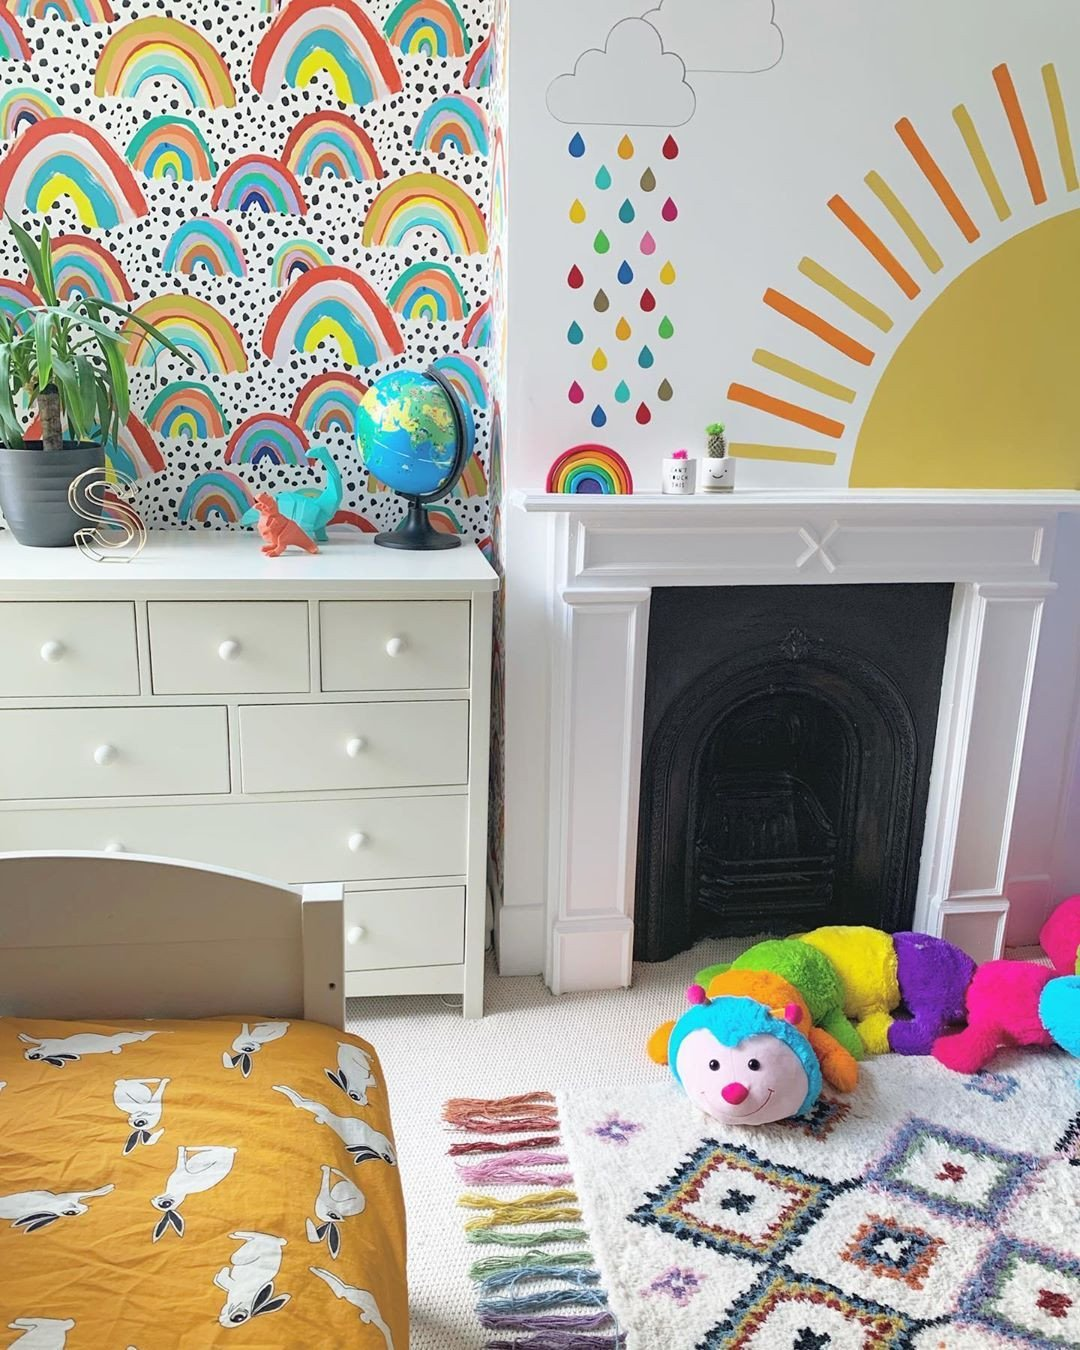 Wallpapers for Girls Bedroom Luxury Love the Colours In This Bedroom with the Rainbow Wallpaper